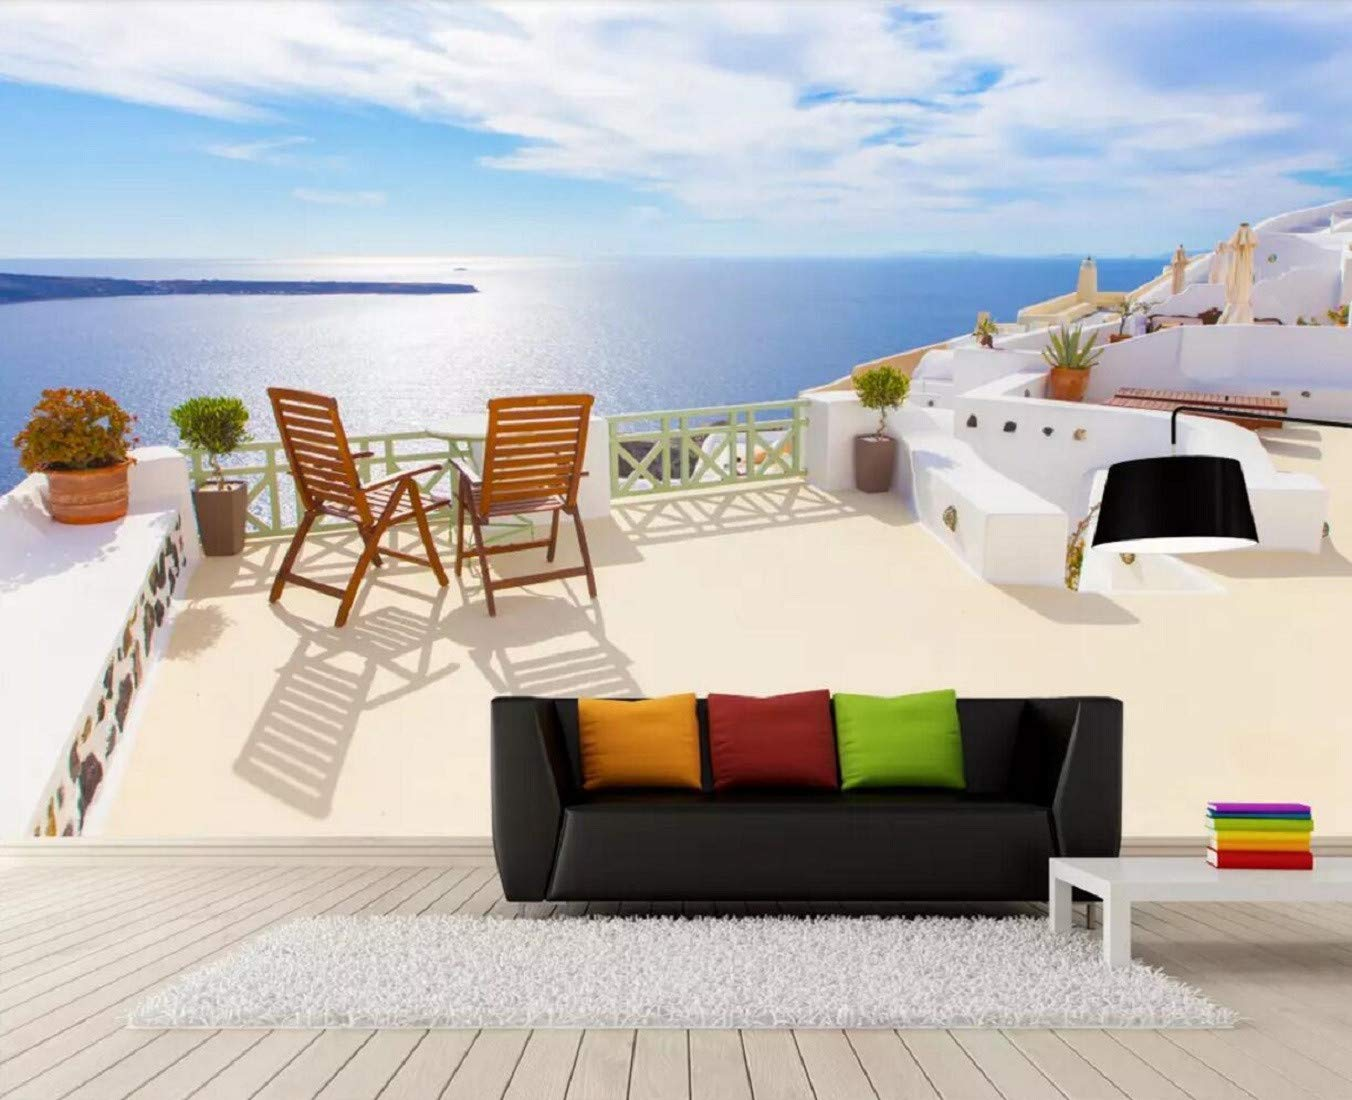 Wall Mural of The Love Sea in Santorini Greece Europe Mural 1352x1100